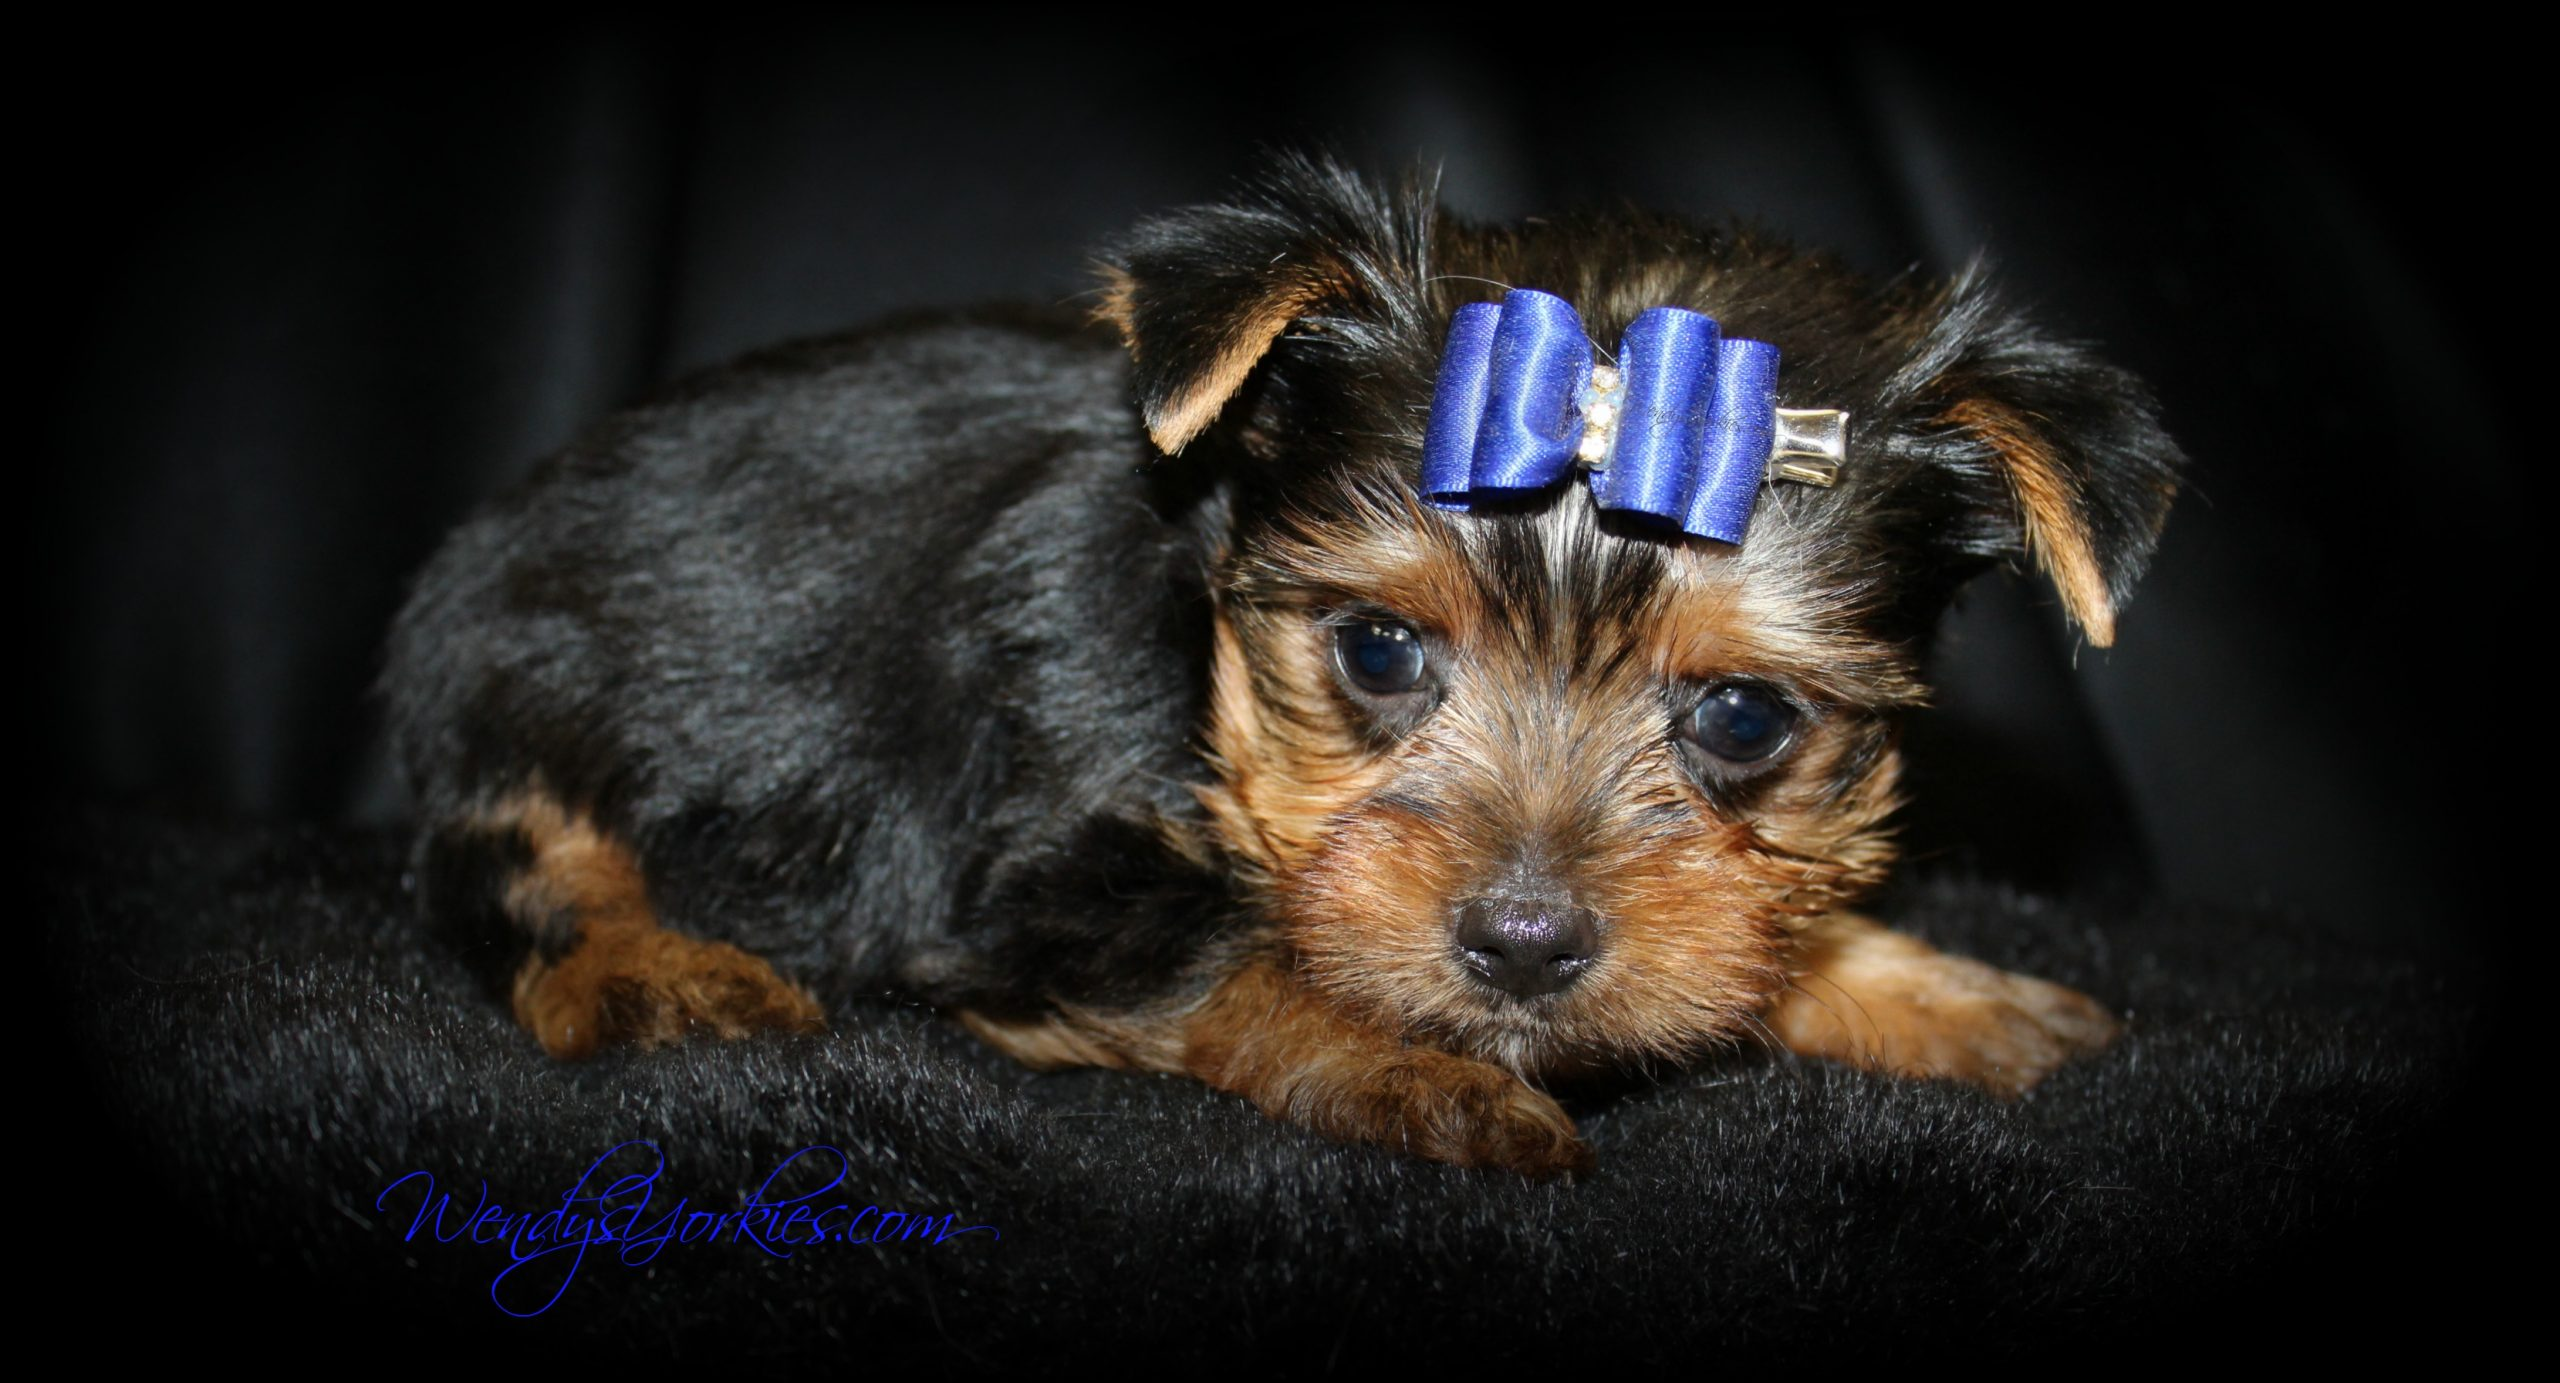 Teacup Yorkie puppy for sale, Star m1, WendysYorkies.com